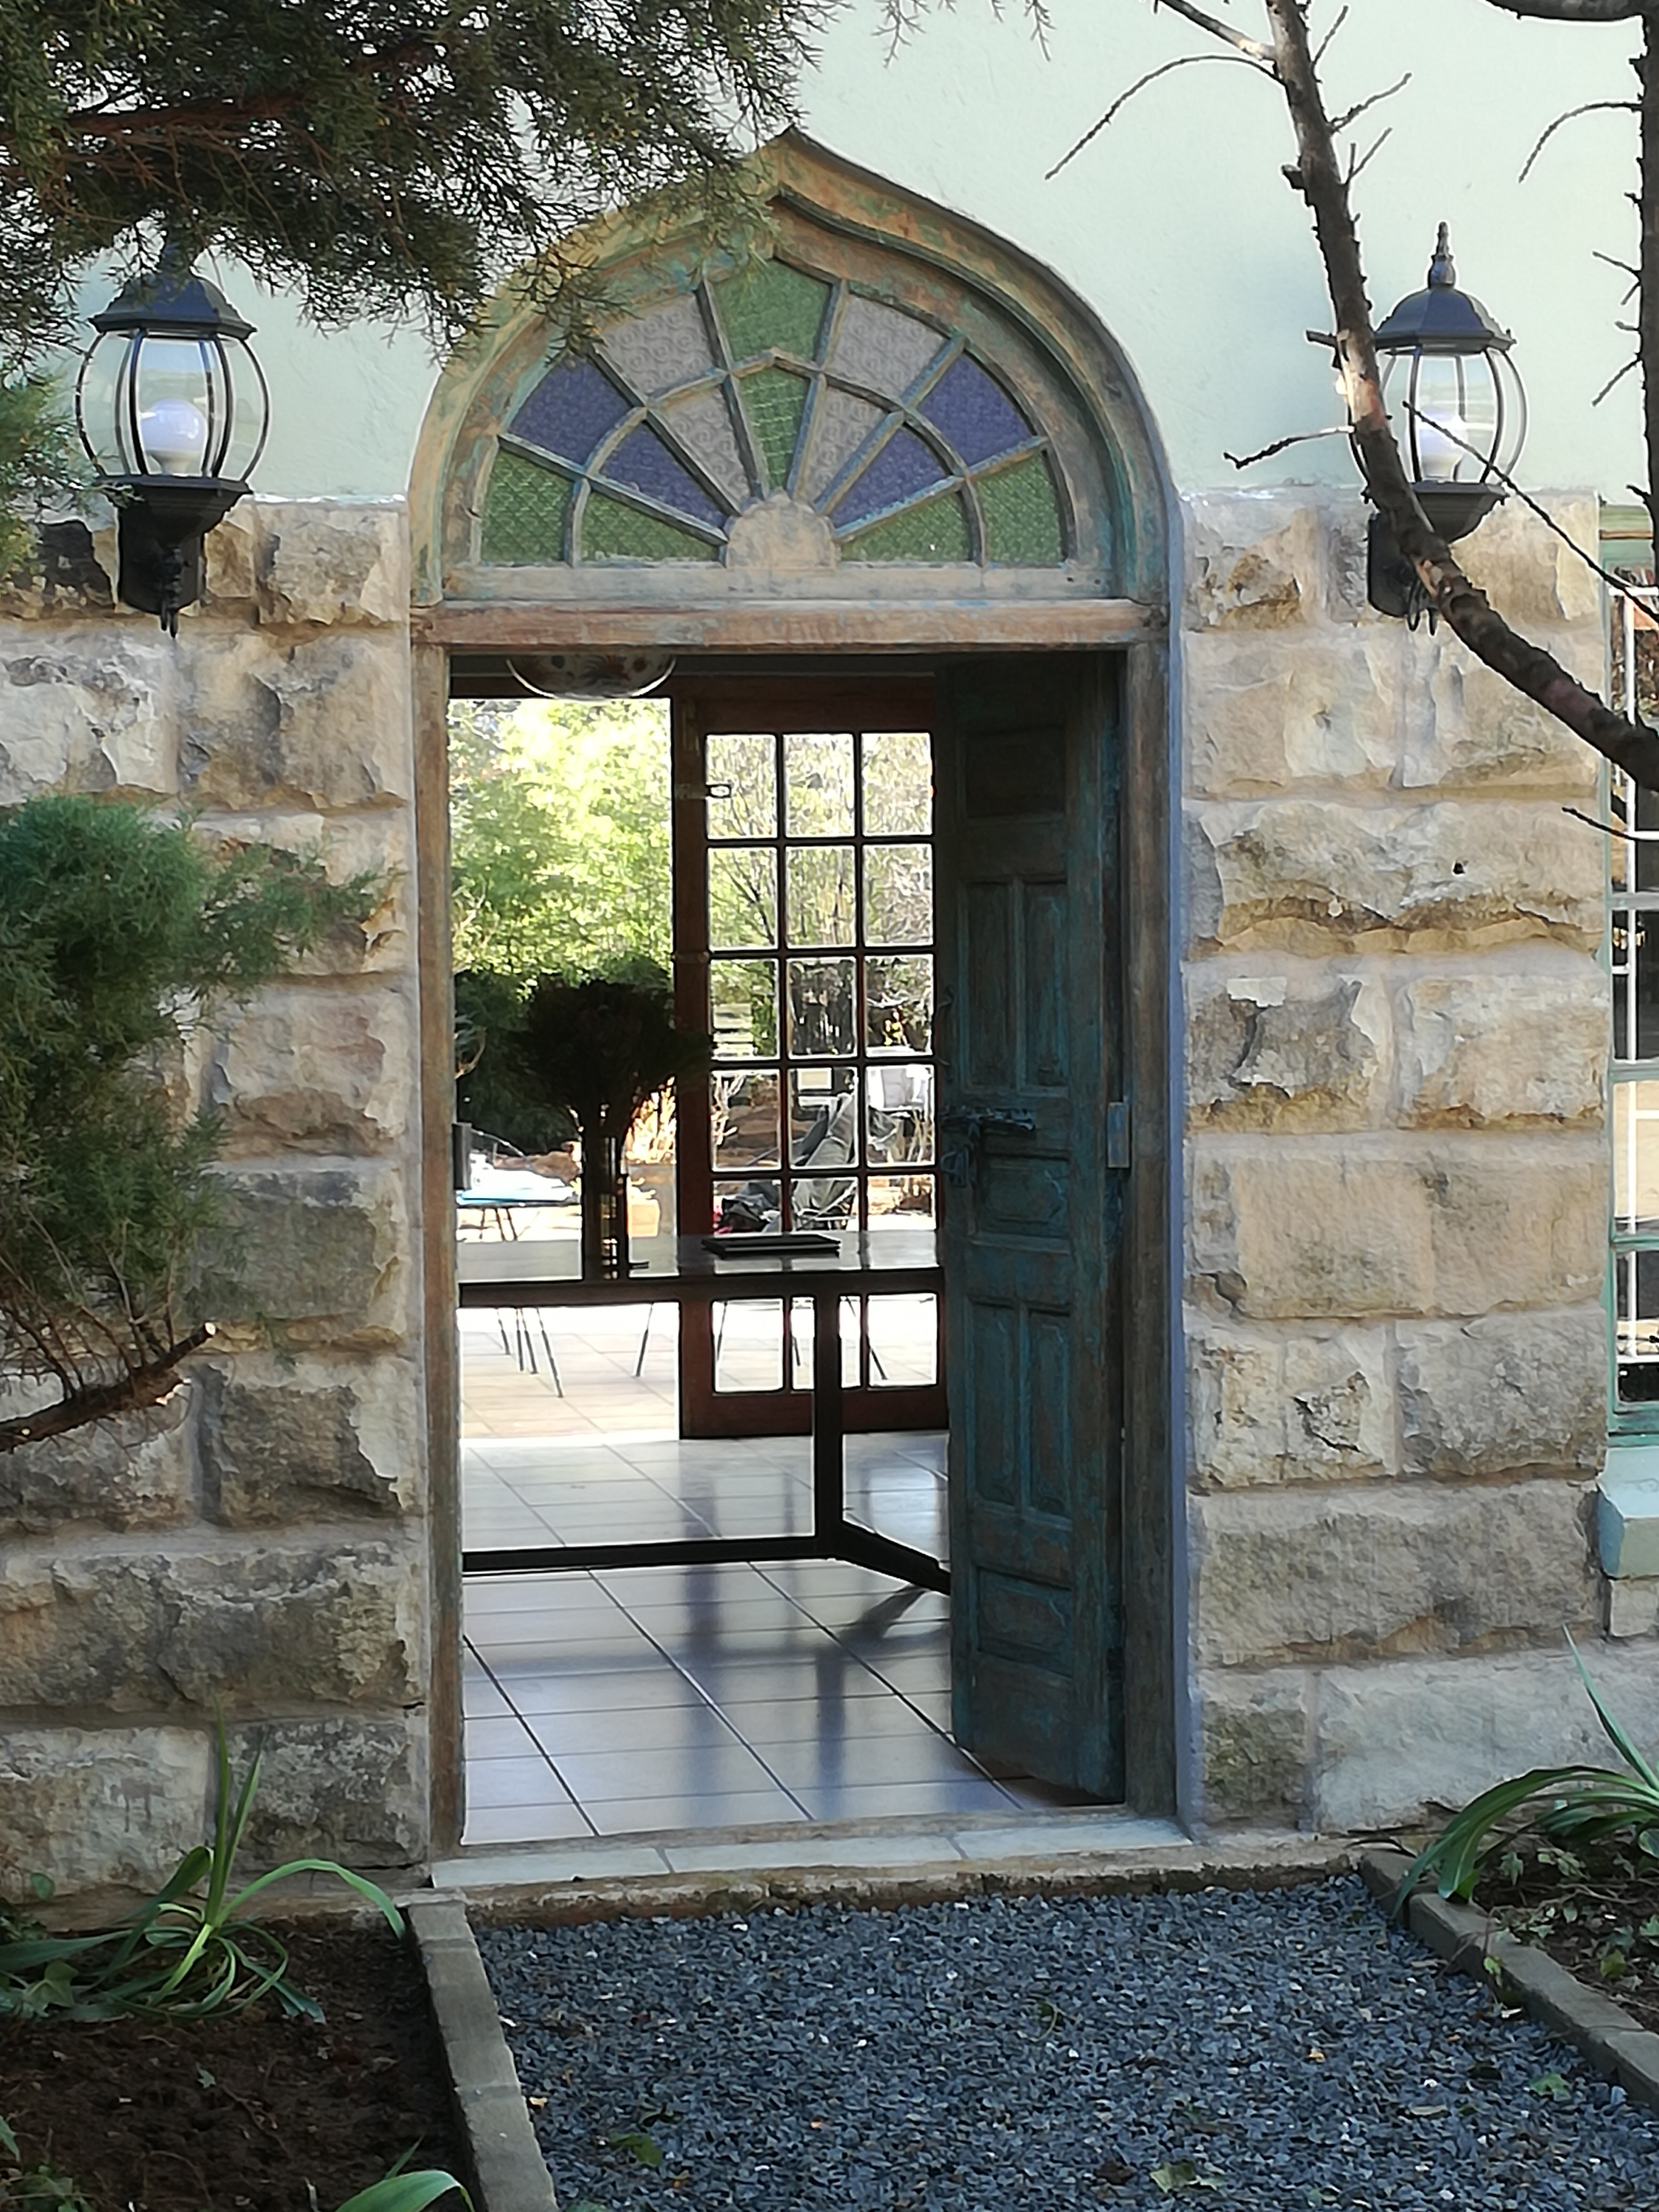 GYPSY GUEST HOUSE CLARENS (Self Catering apartments in Clarens